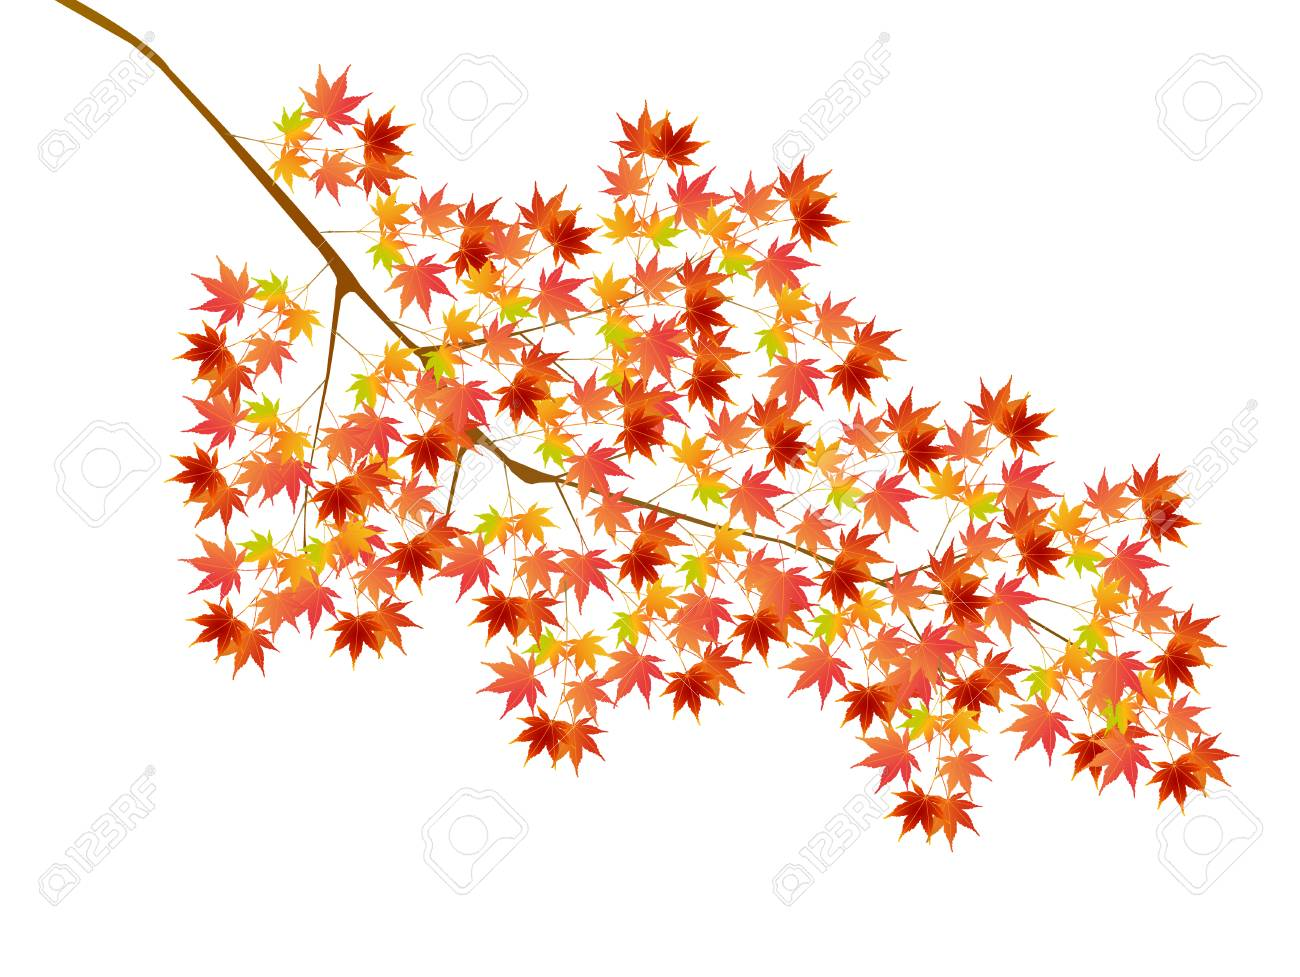 Autumn Leaves Fall Tree Icon Royalty Free Cliparts Vectors And Stock Illustration Image 63264761